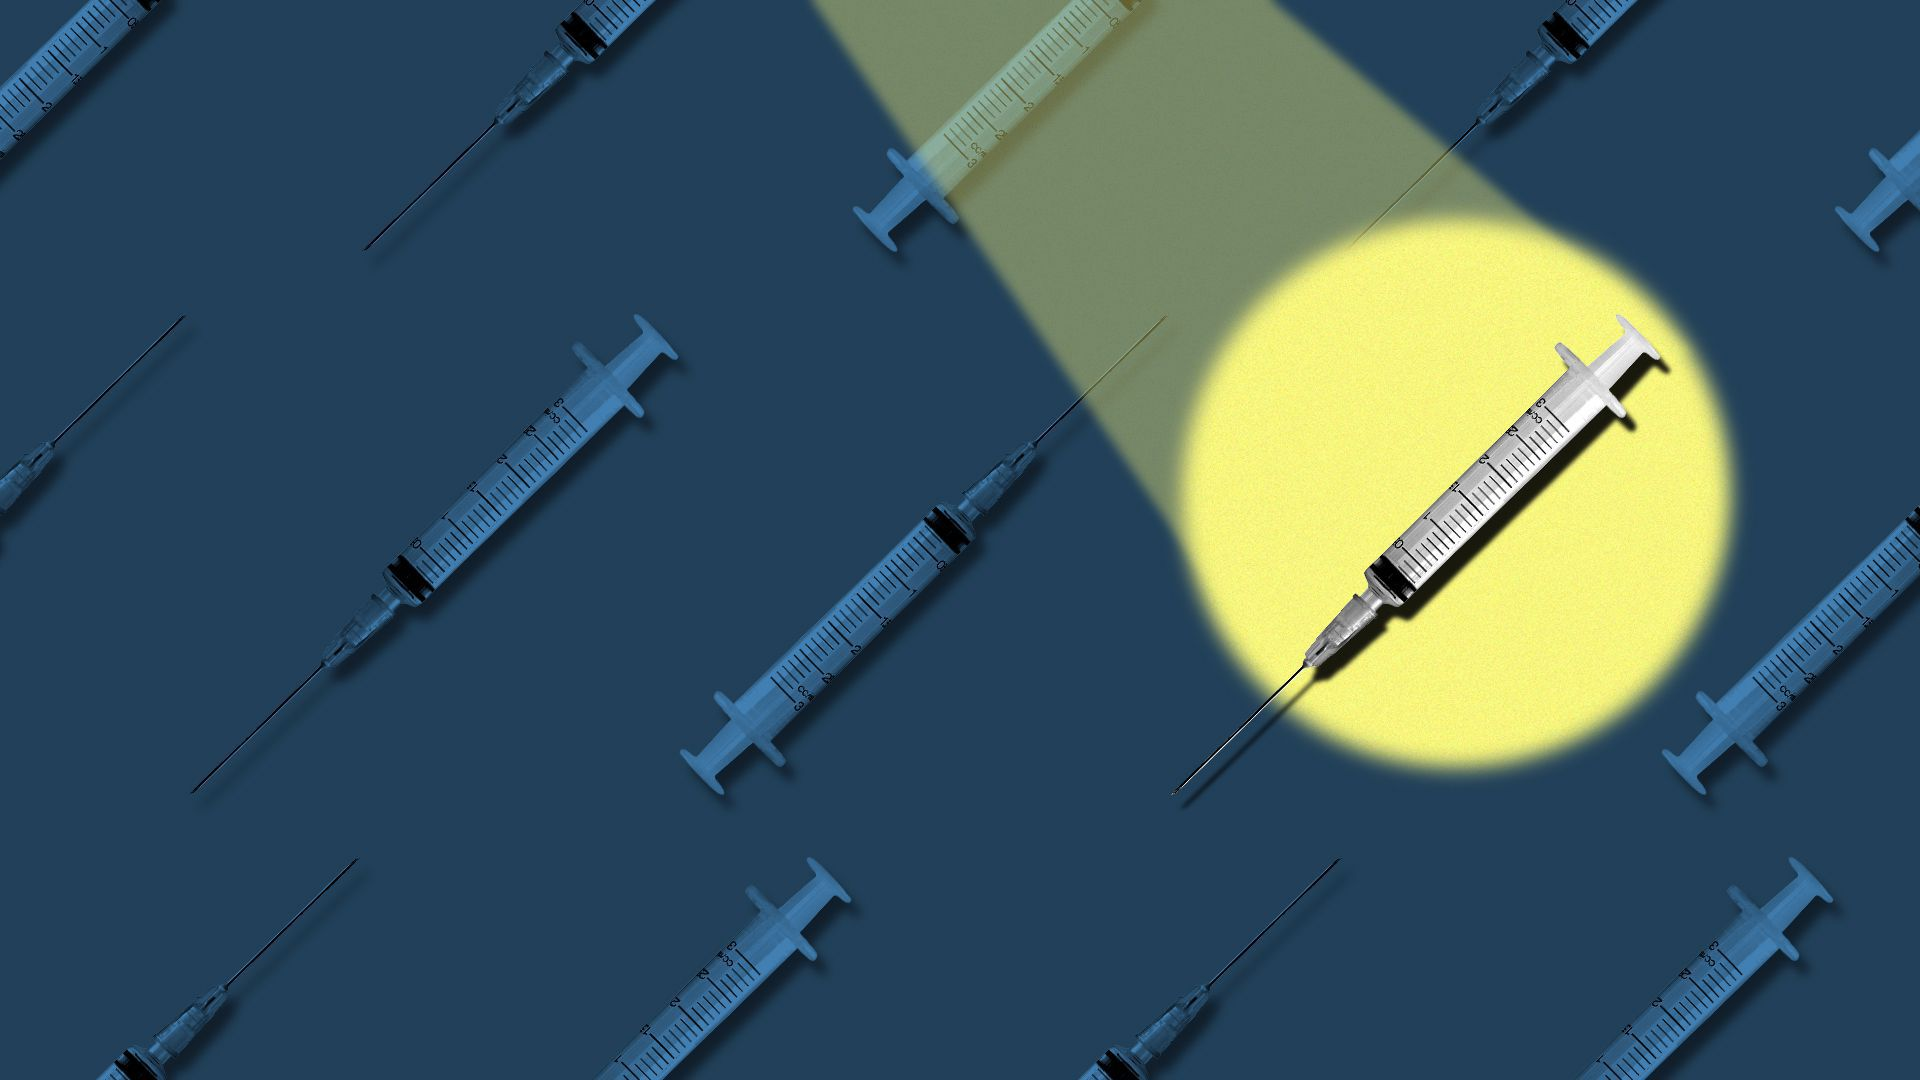 Illustration of a pattern of syringes, with a spotlight on one of them.